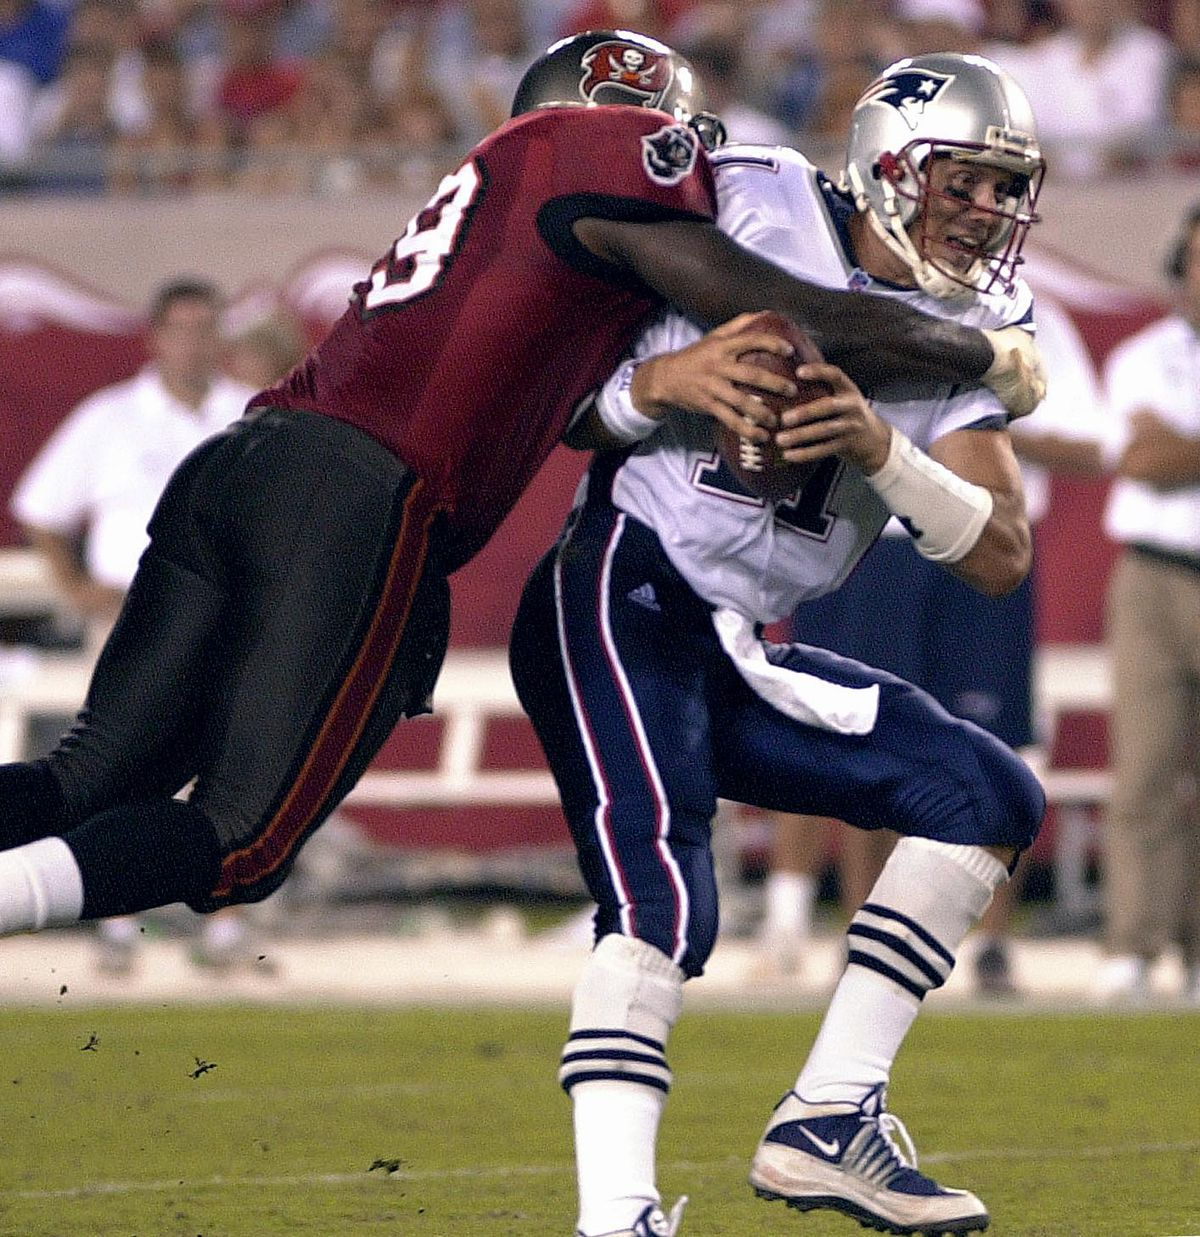 New England quarterback Drew Bledsoe is sacked by